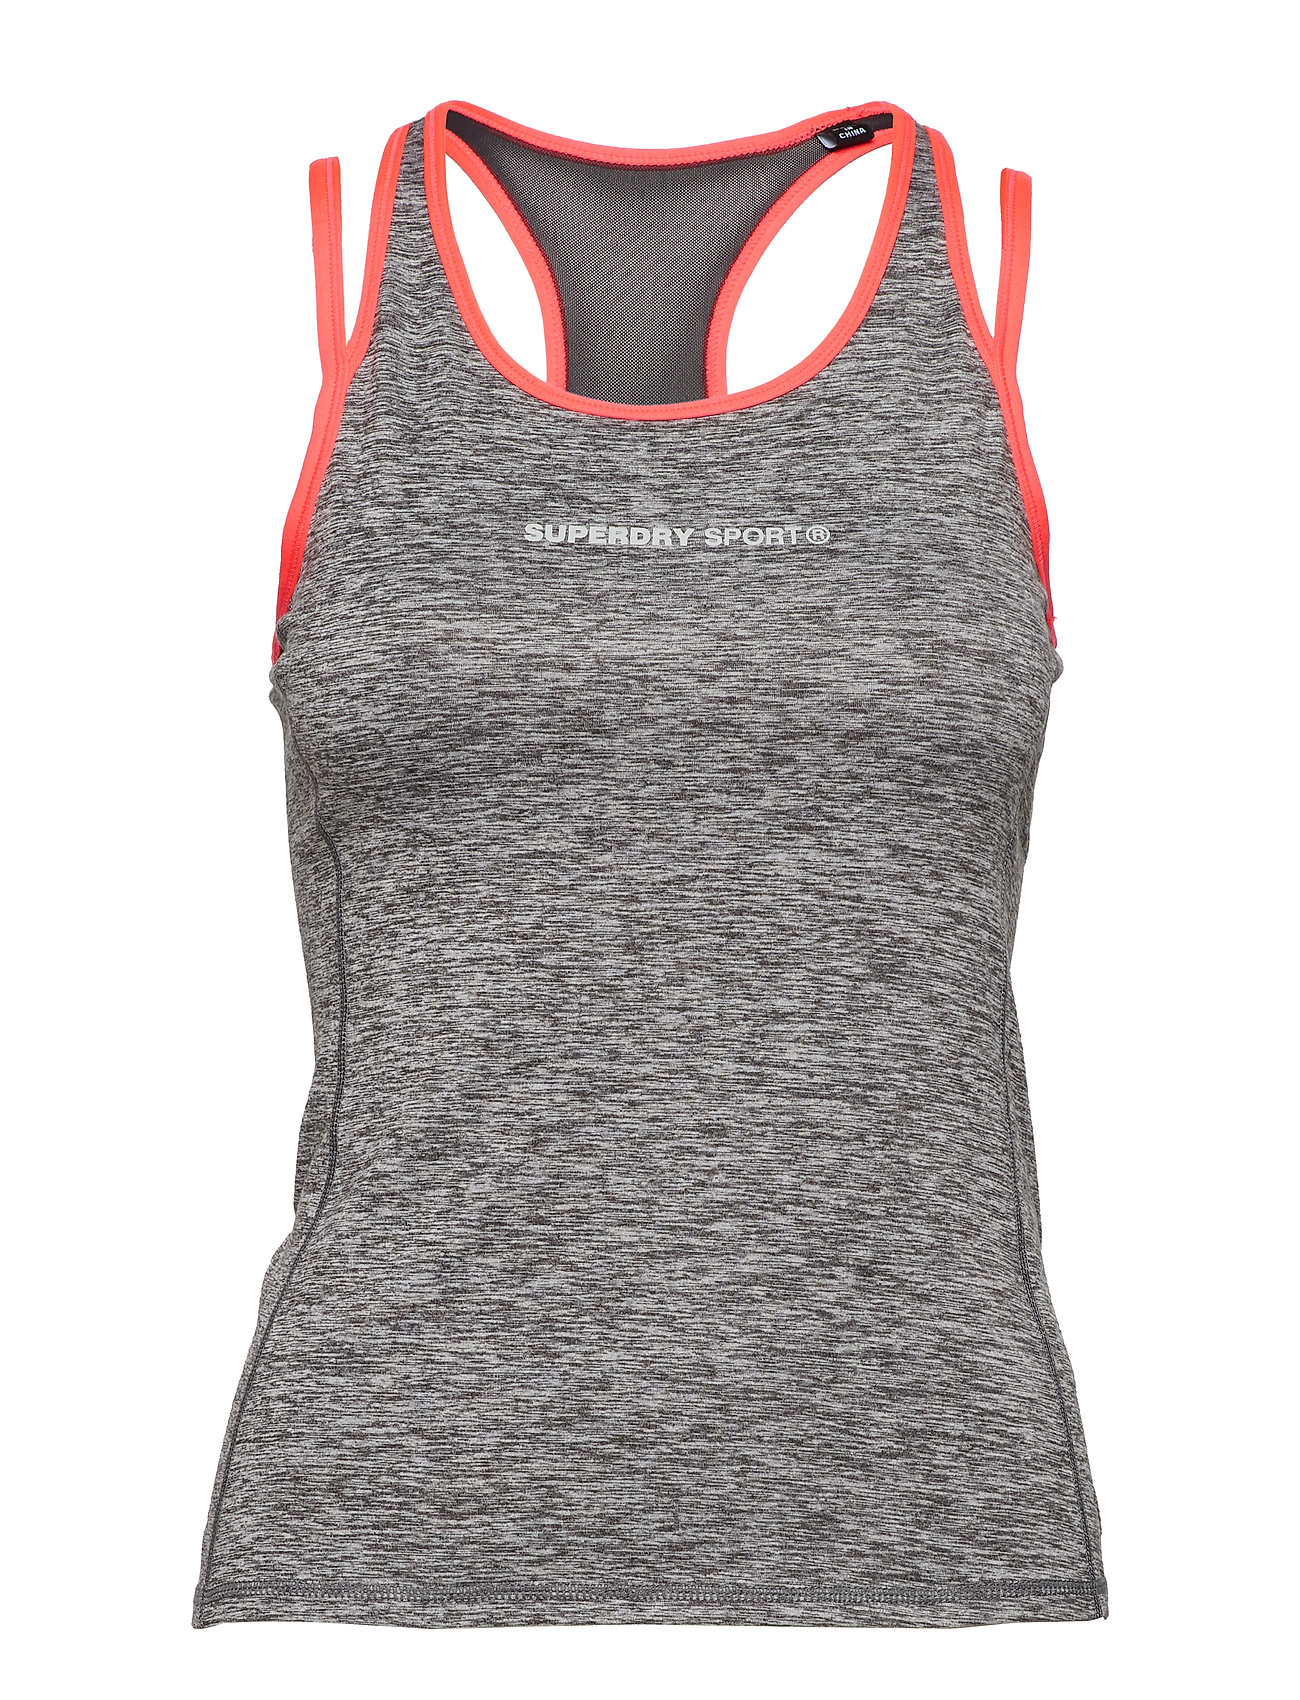 Superdry SUPERDRY GYM DUO STRAP VEST - CHARCOAL GRIT